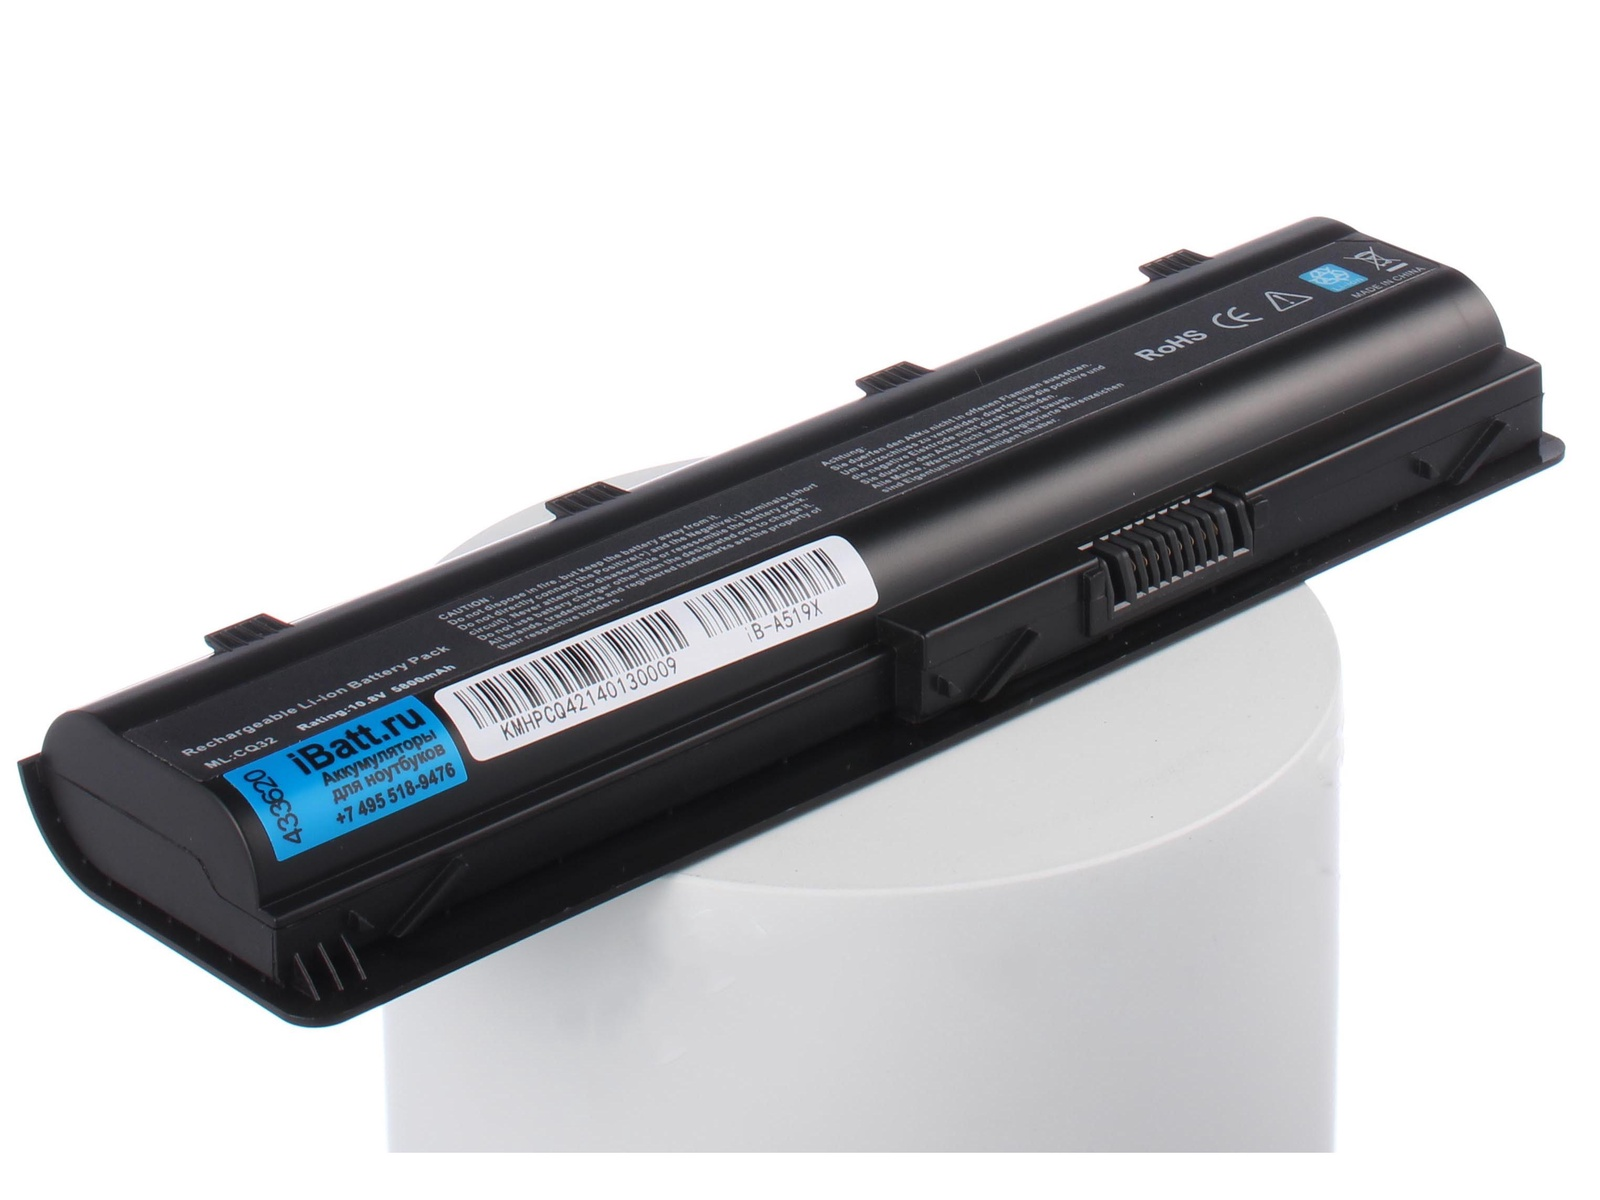 Аккумулятор для ноутбука iBatt для HP-Compaq Pavilion g7-2203sr, Pavilion g7-2206er, Pavilion g7-2225sr, Pavilion g7-2240us, Pavilion g7-2241sf, Pavilion g7-2320dx, Pavilion g7-2327sr, Pavilion g7-2365er, Pavilion g7-2376sr 650199 001 for hp pavilion g7 g4 laptop motherboard hm65 ddr3 free shipping 100